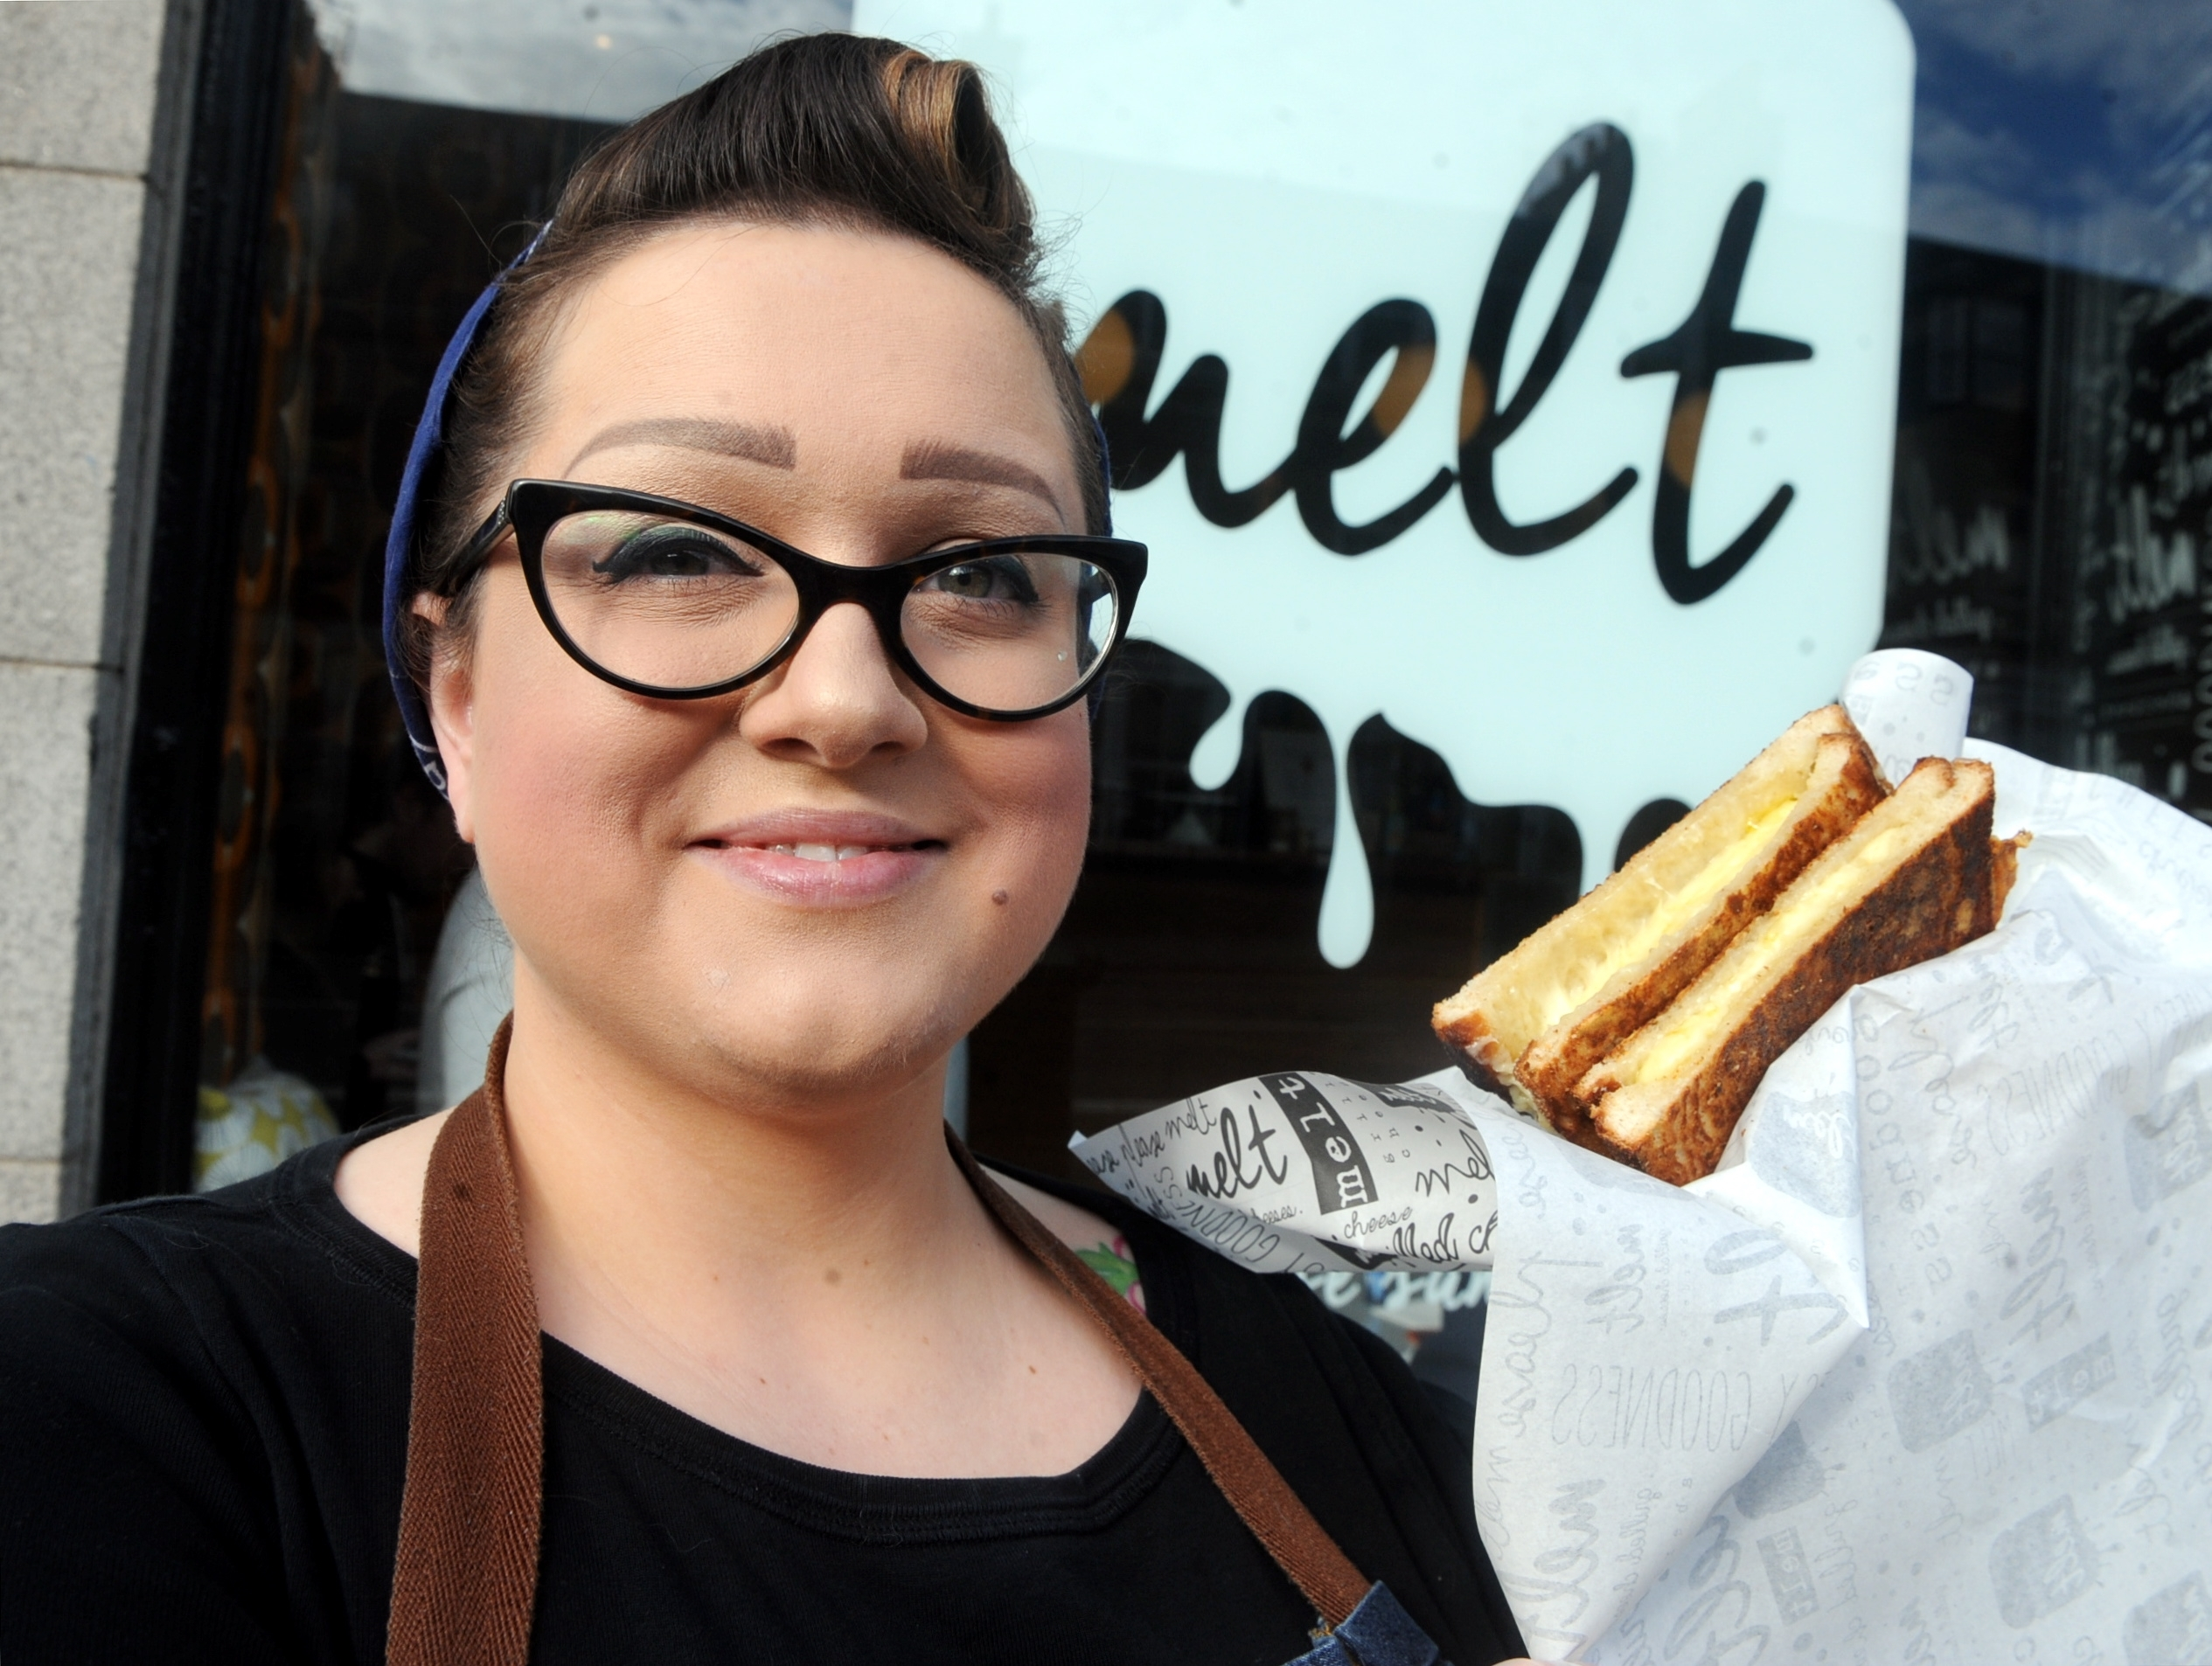 Mechelle Clark the owner of Melt on Holburn Street, Aberdeen